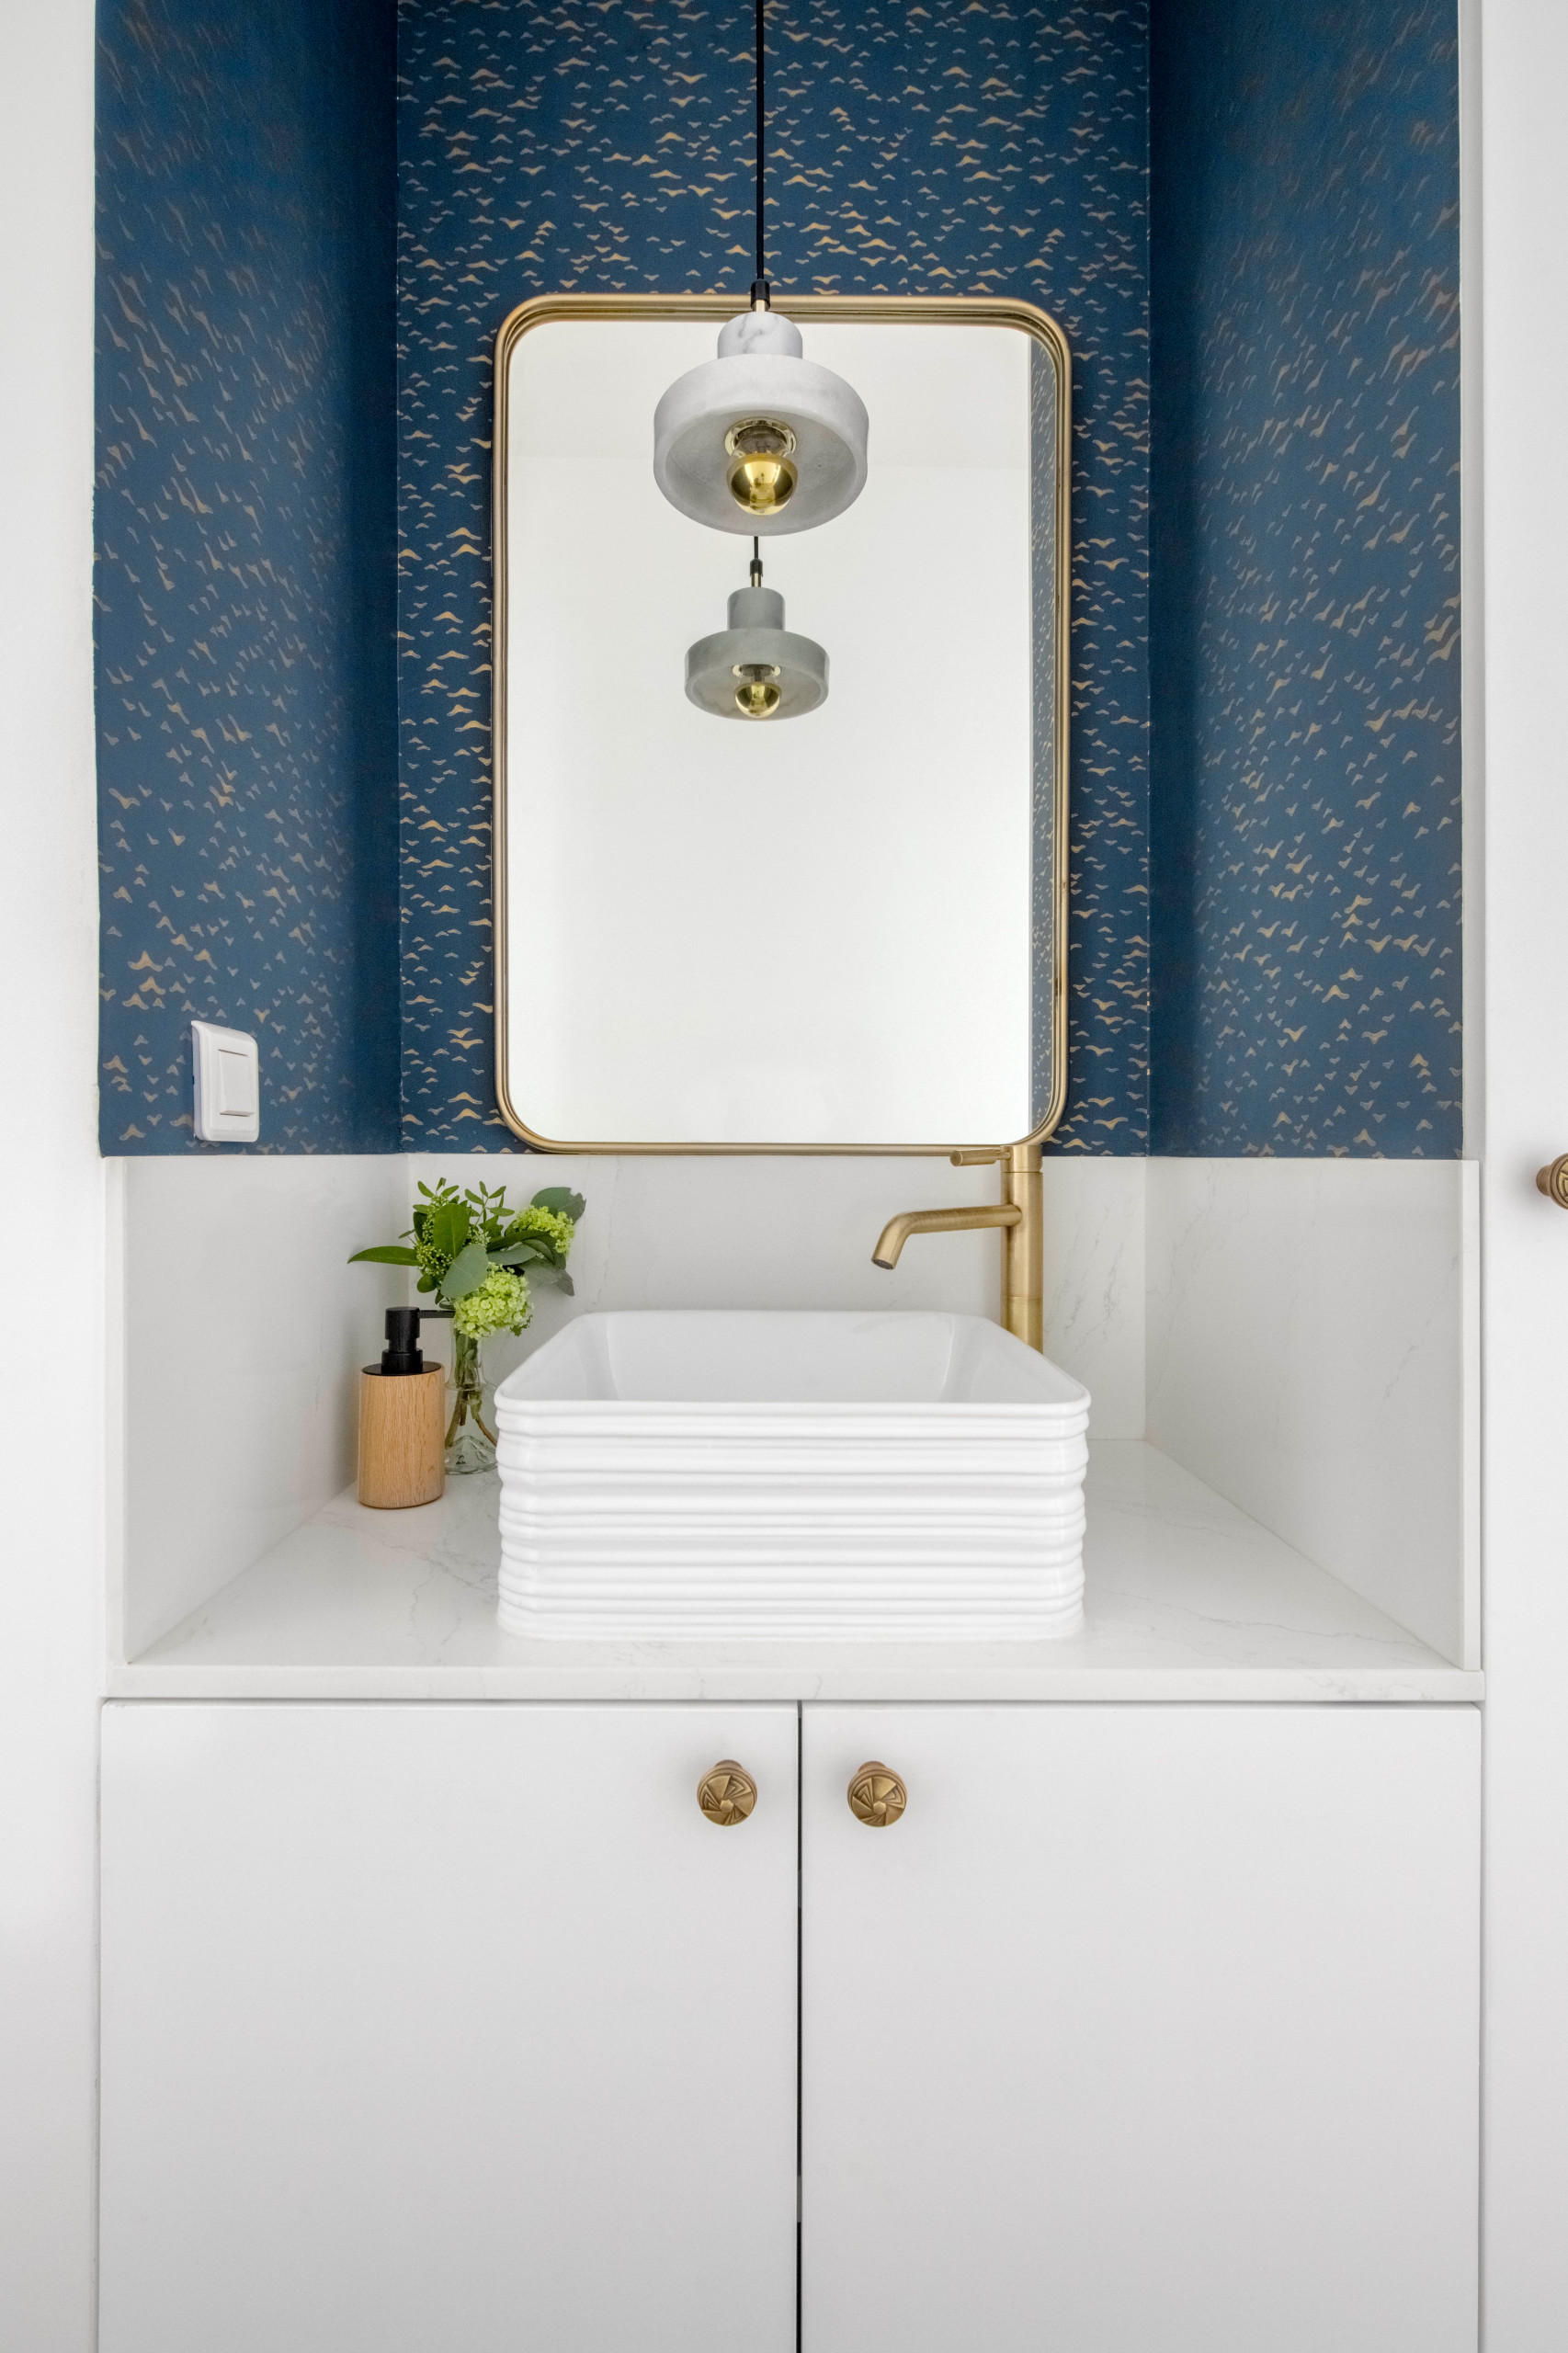 75 Beautiful Wallpaper Bathroom Pictures Ideas February 2021 Houzz